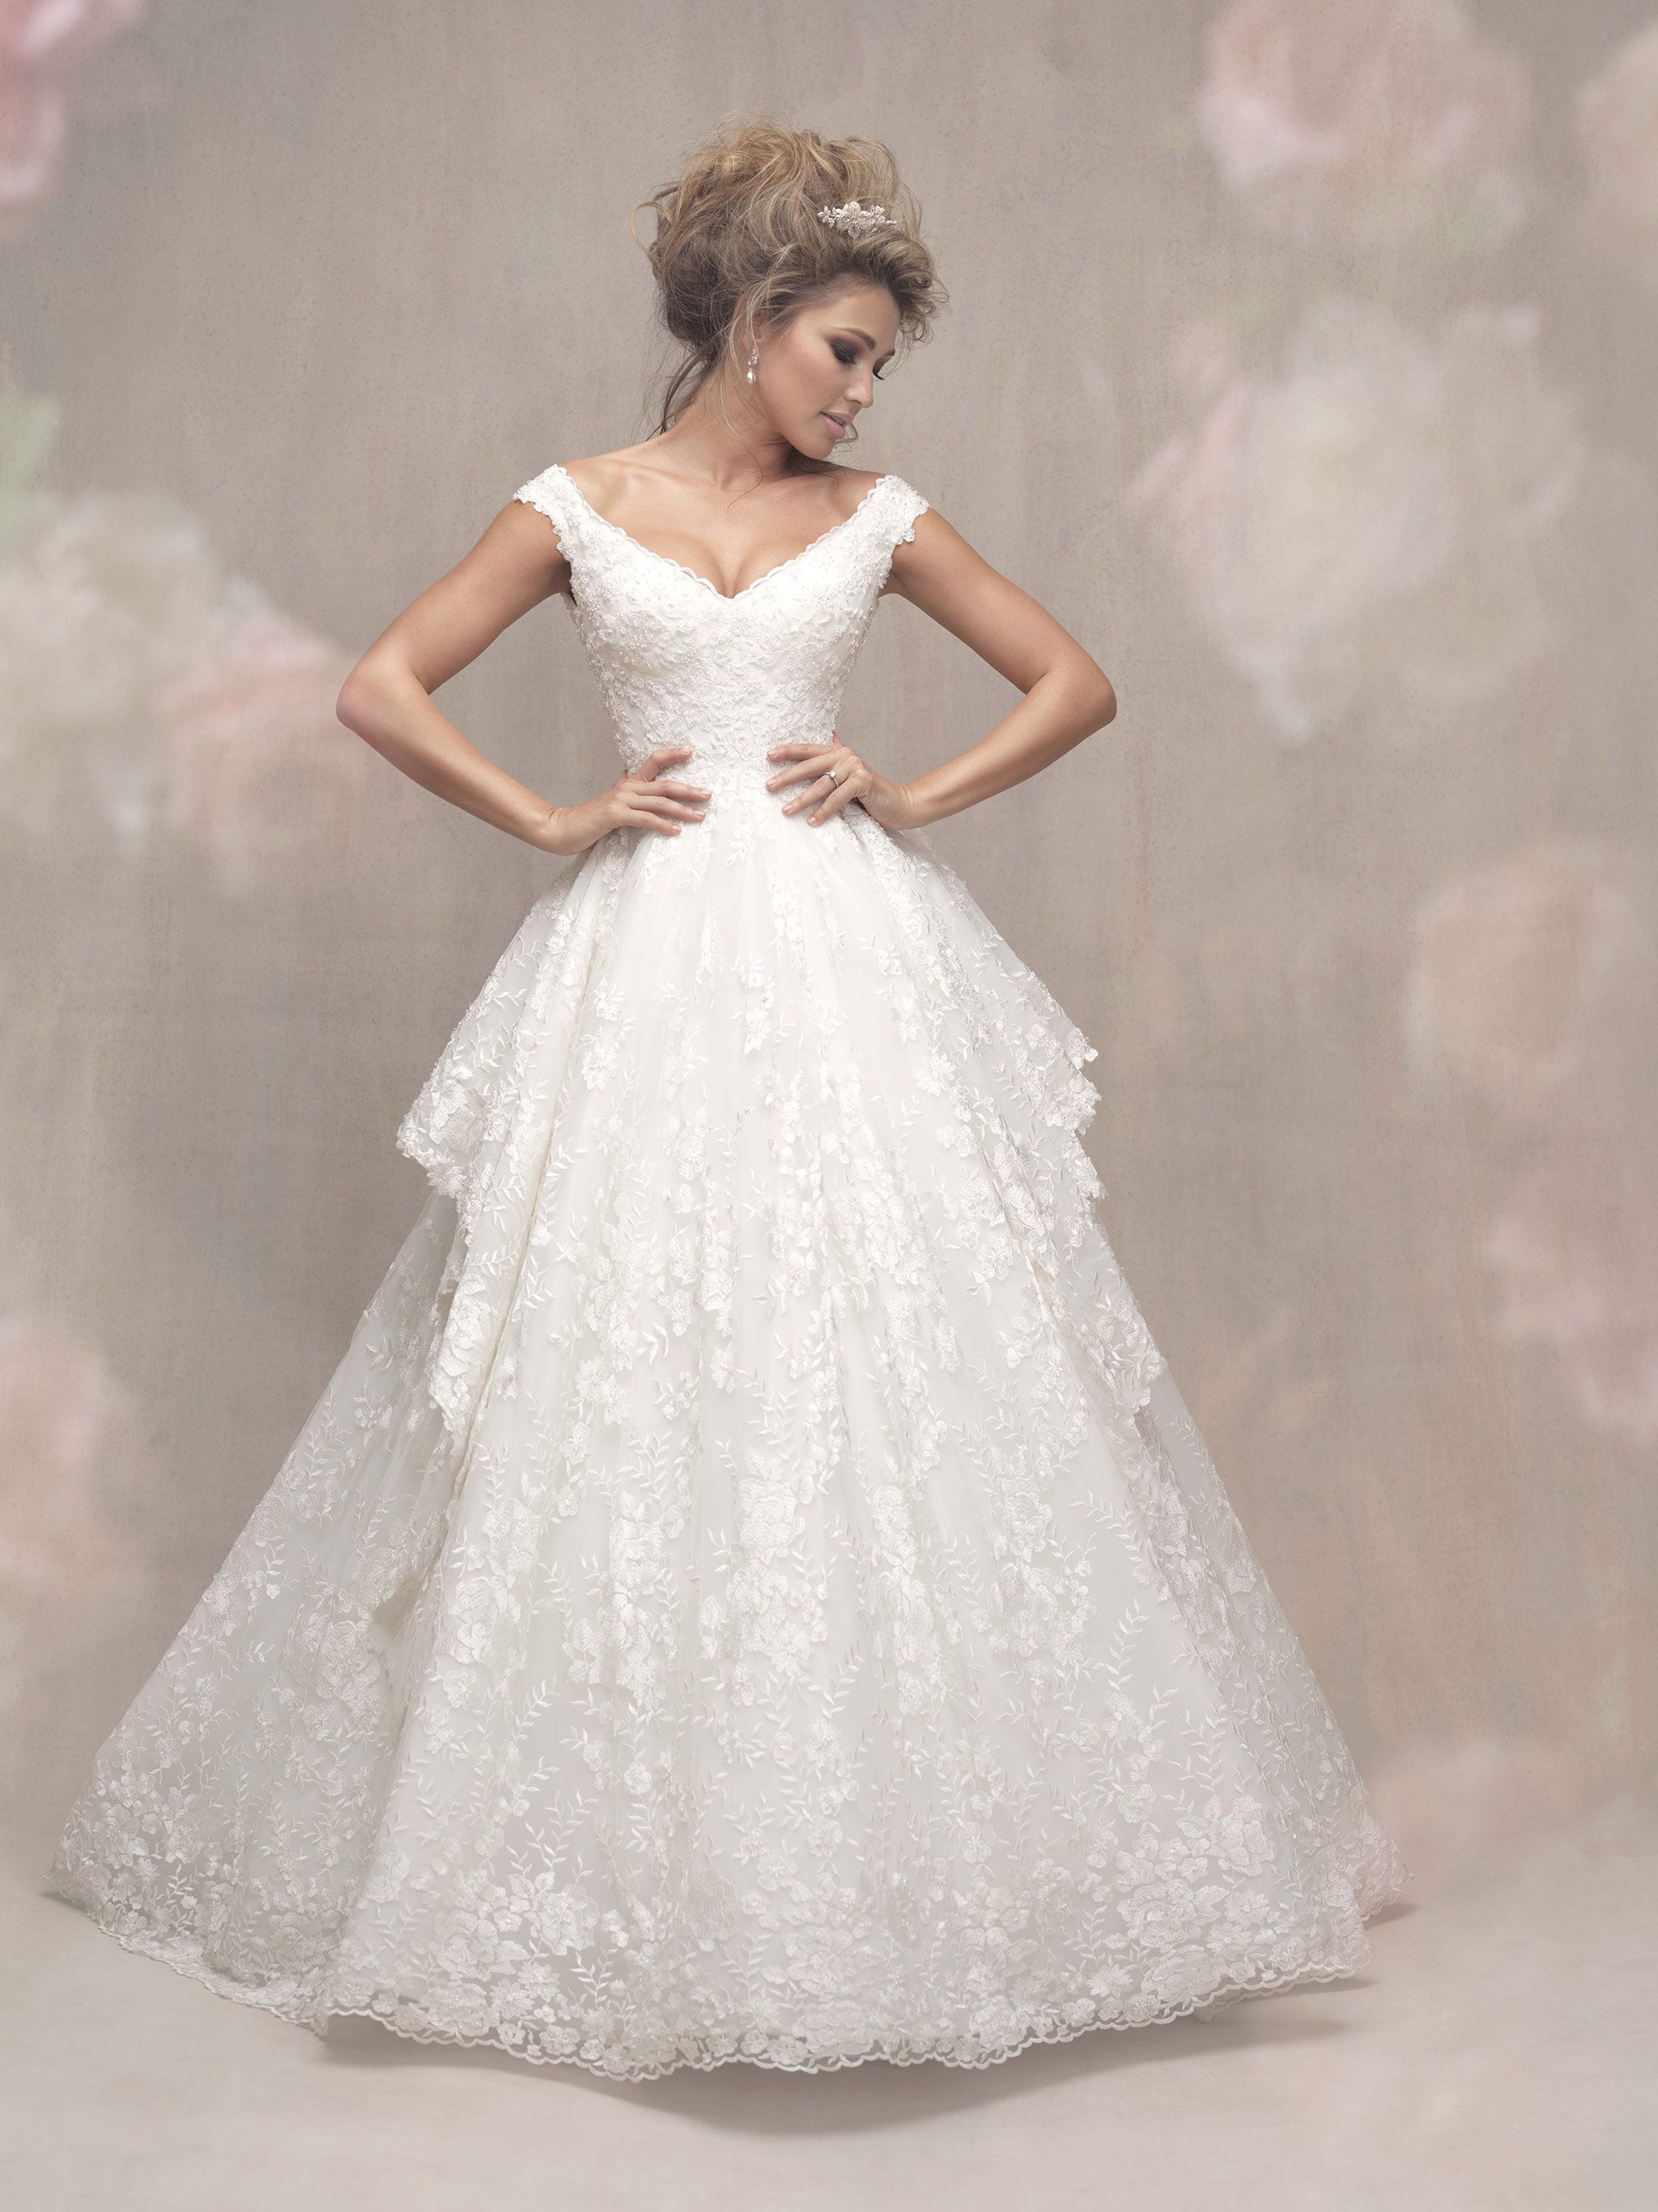 The Allure Couture Collection can be found at Bellevue Bridal ...